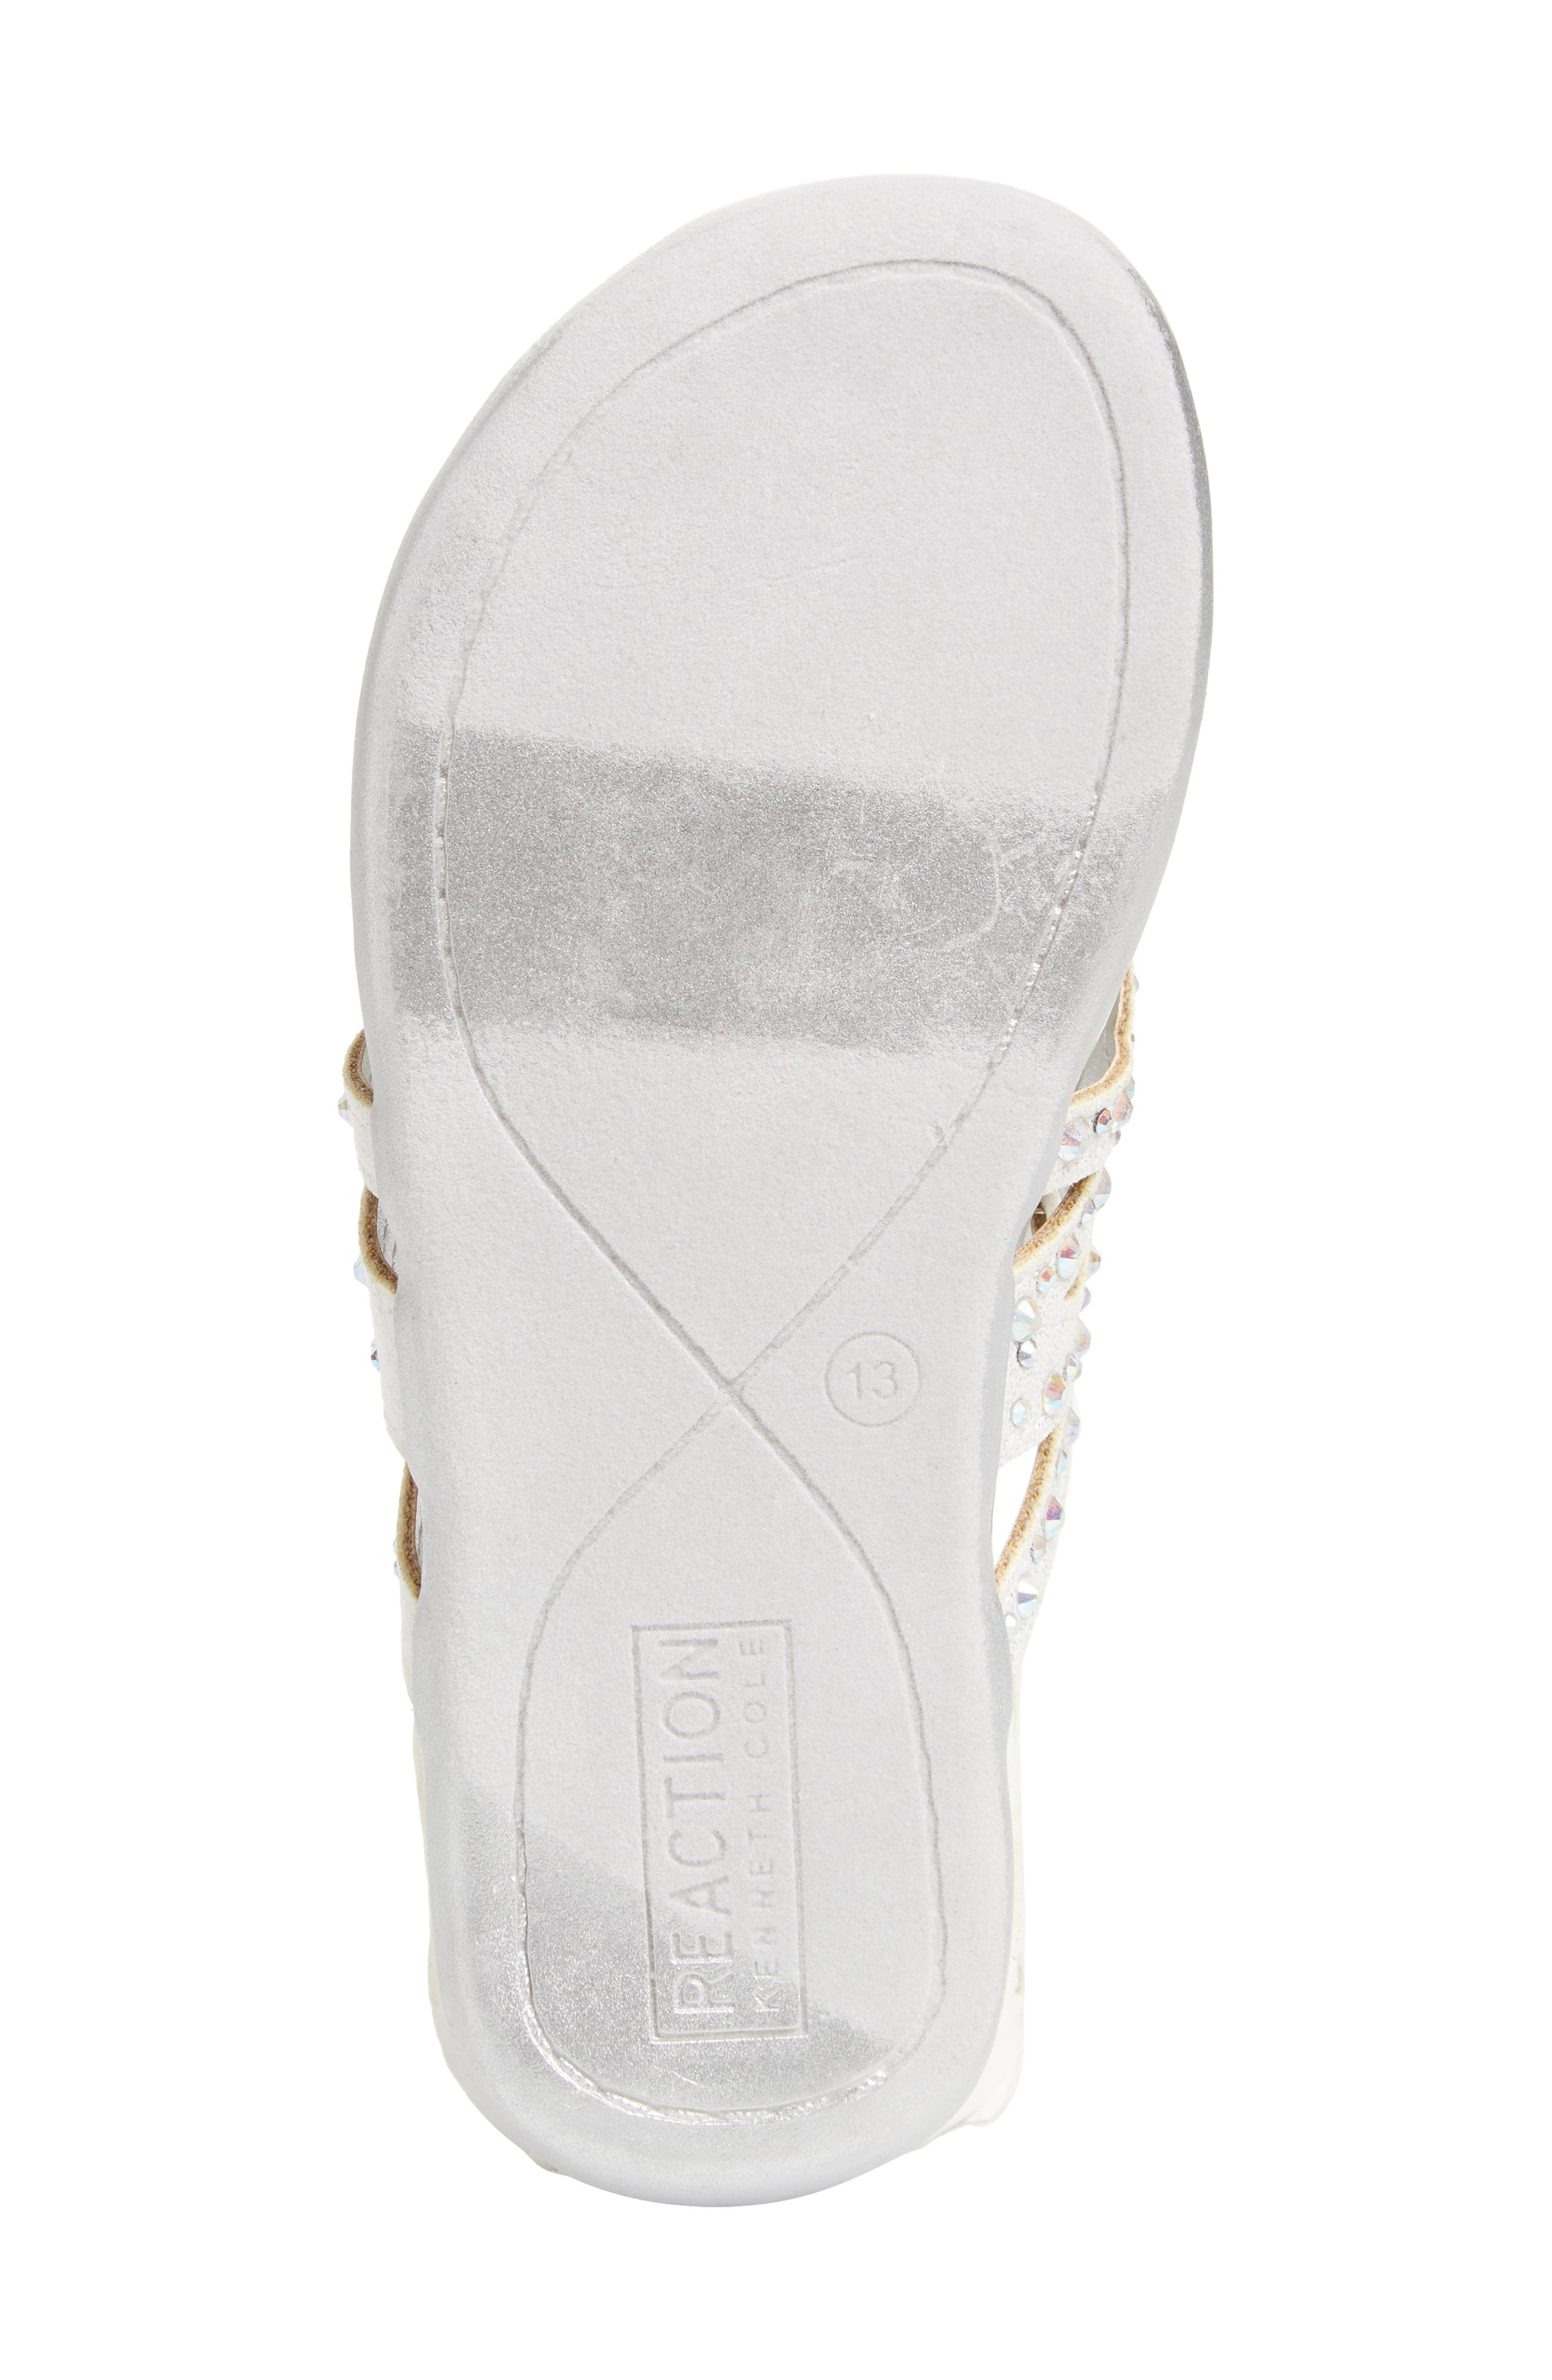 REACTION KENNETH COLE,                             Kenneth Cole New York Flutter Metallic Crystal Thong Sandal,                             Alternate thumbnail 6, color,                             044